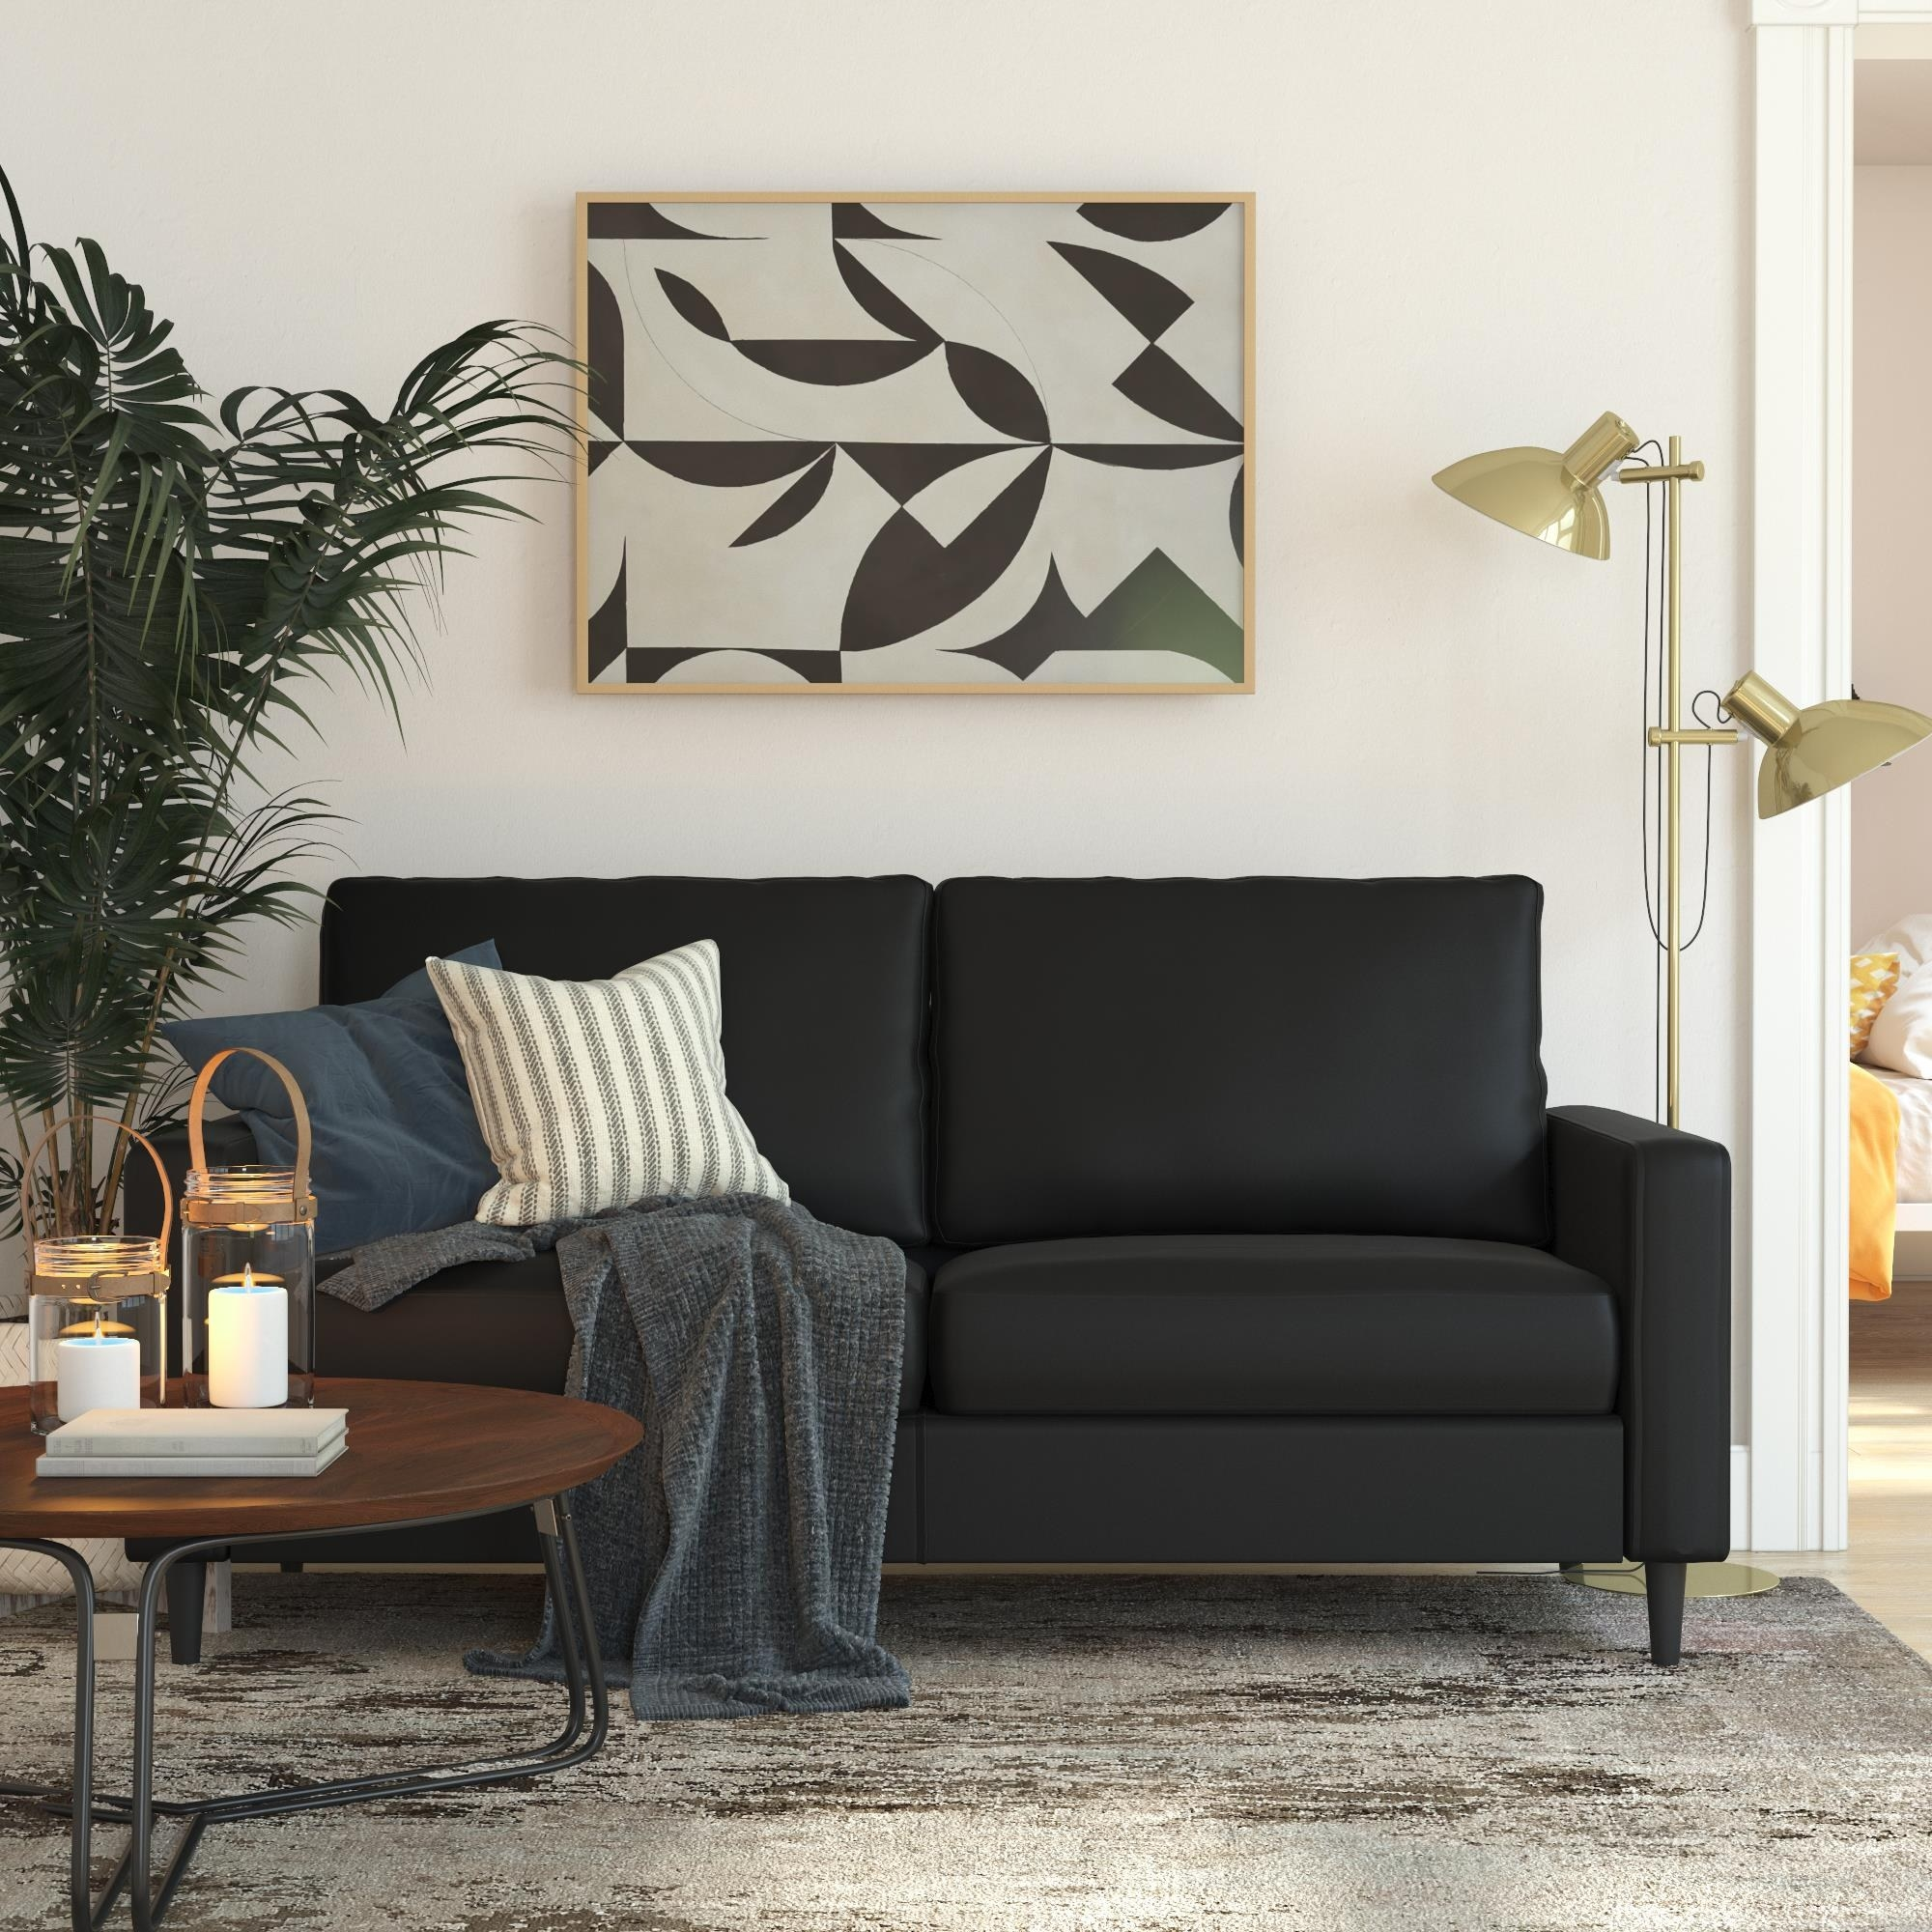 The two-seater black sofa with matching legs and track arms